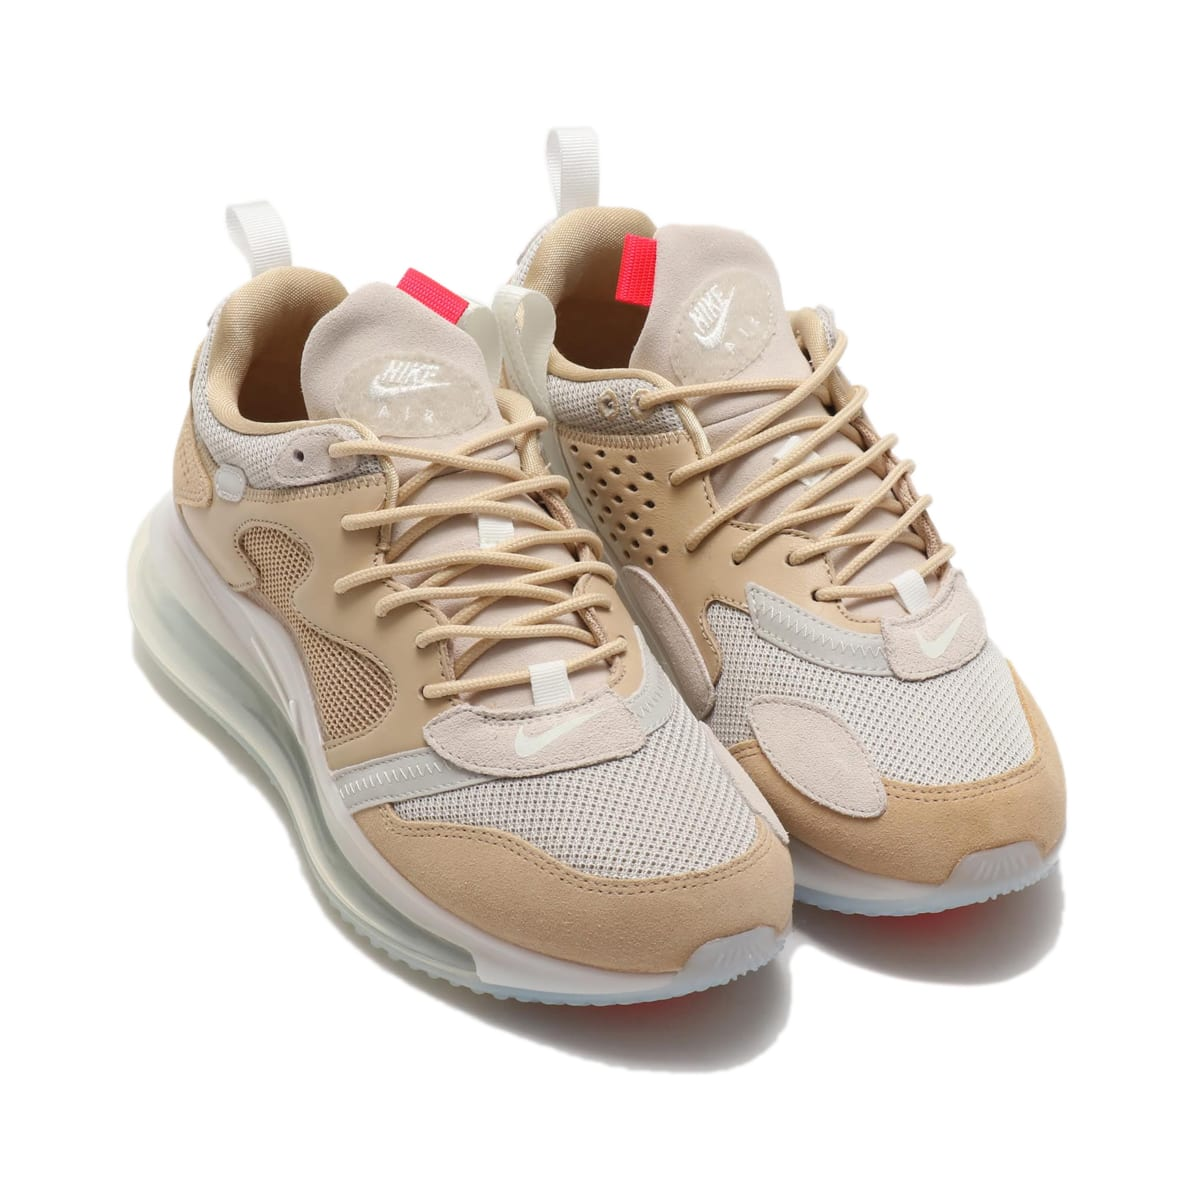 NIKE AIR MAX 720 / OBJ DESERT ORE/LIGHT BONE-SUMMIT WHITE 19SU-S_photo_large